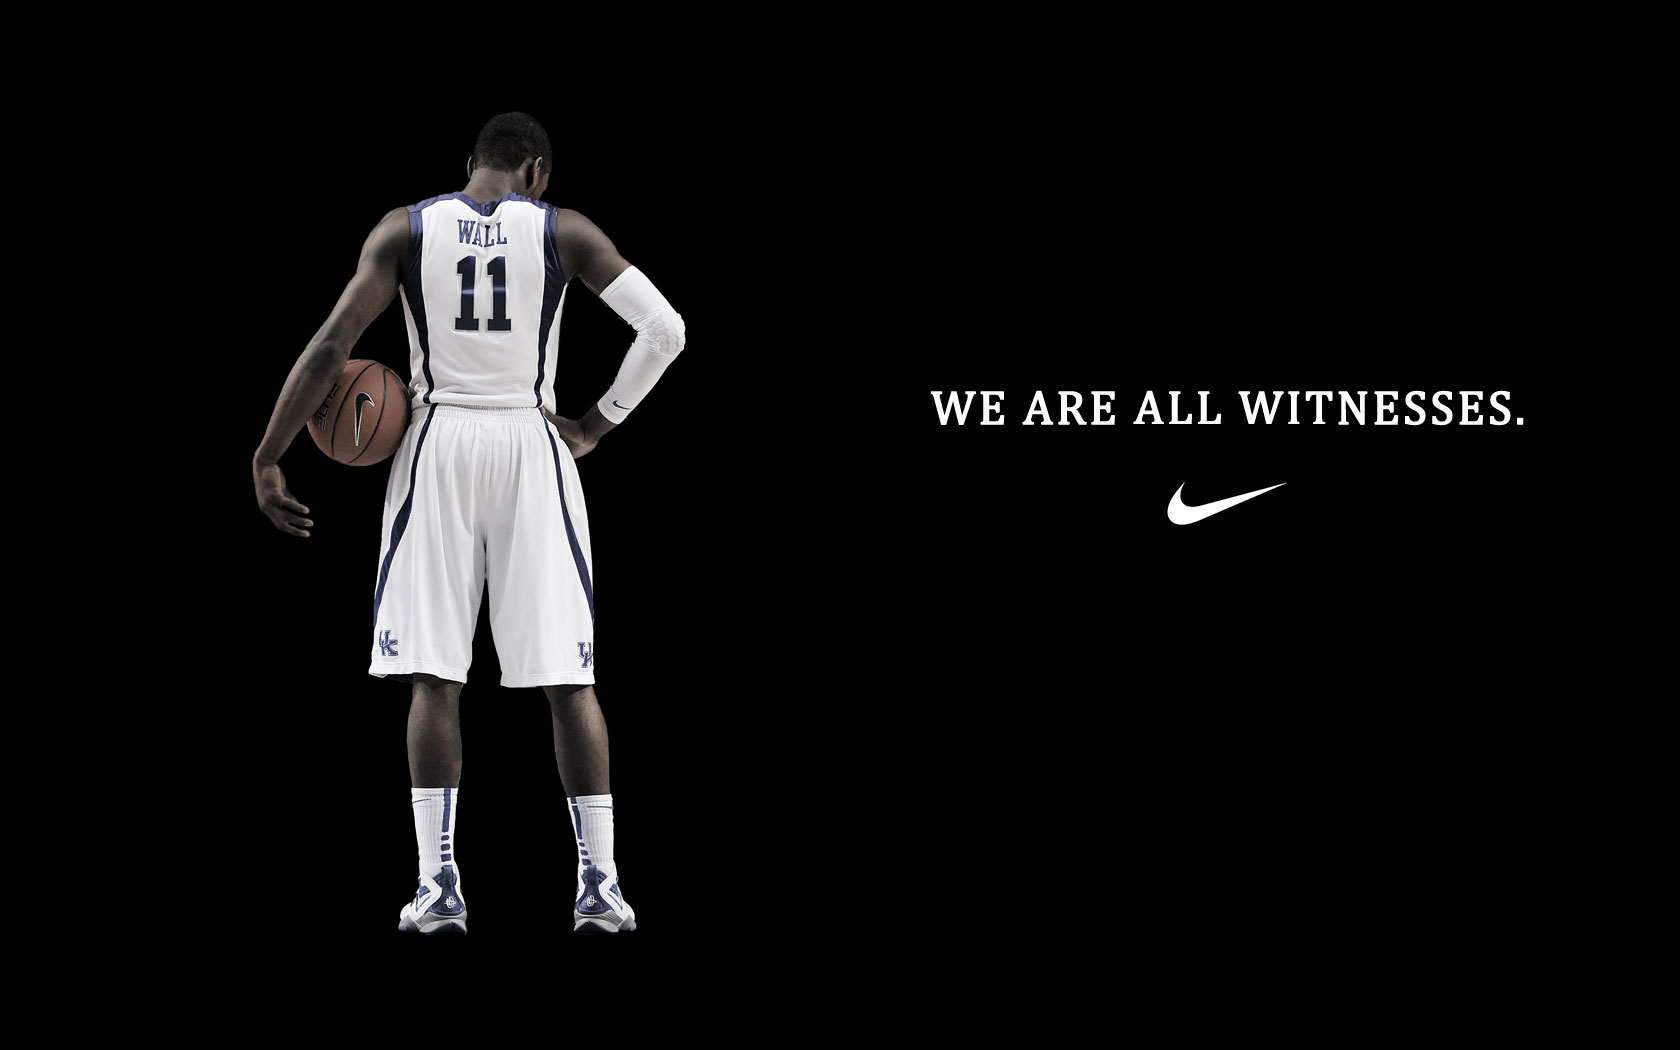 Free Download Nike Basketball Quotes Hd Wallpaper Amazing Pictures And Hd 1680x1050 For Your Desktop Mobile Tablet Explore 47 Nike Basketball Wallpaper Hd Cool Nike Wallpapers Basketball Court Wallpaper